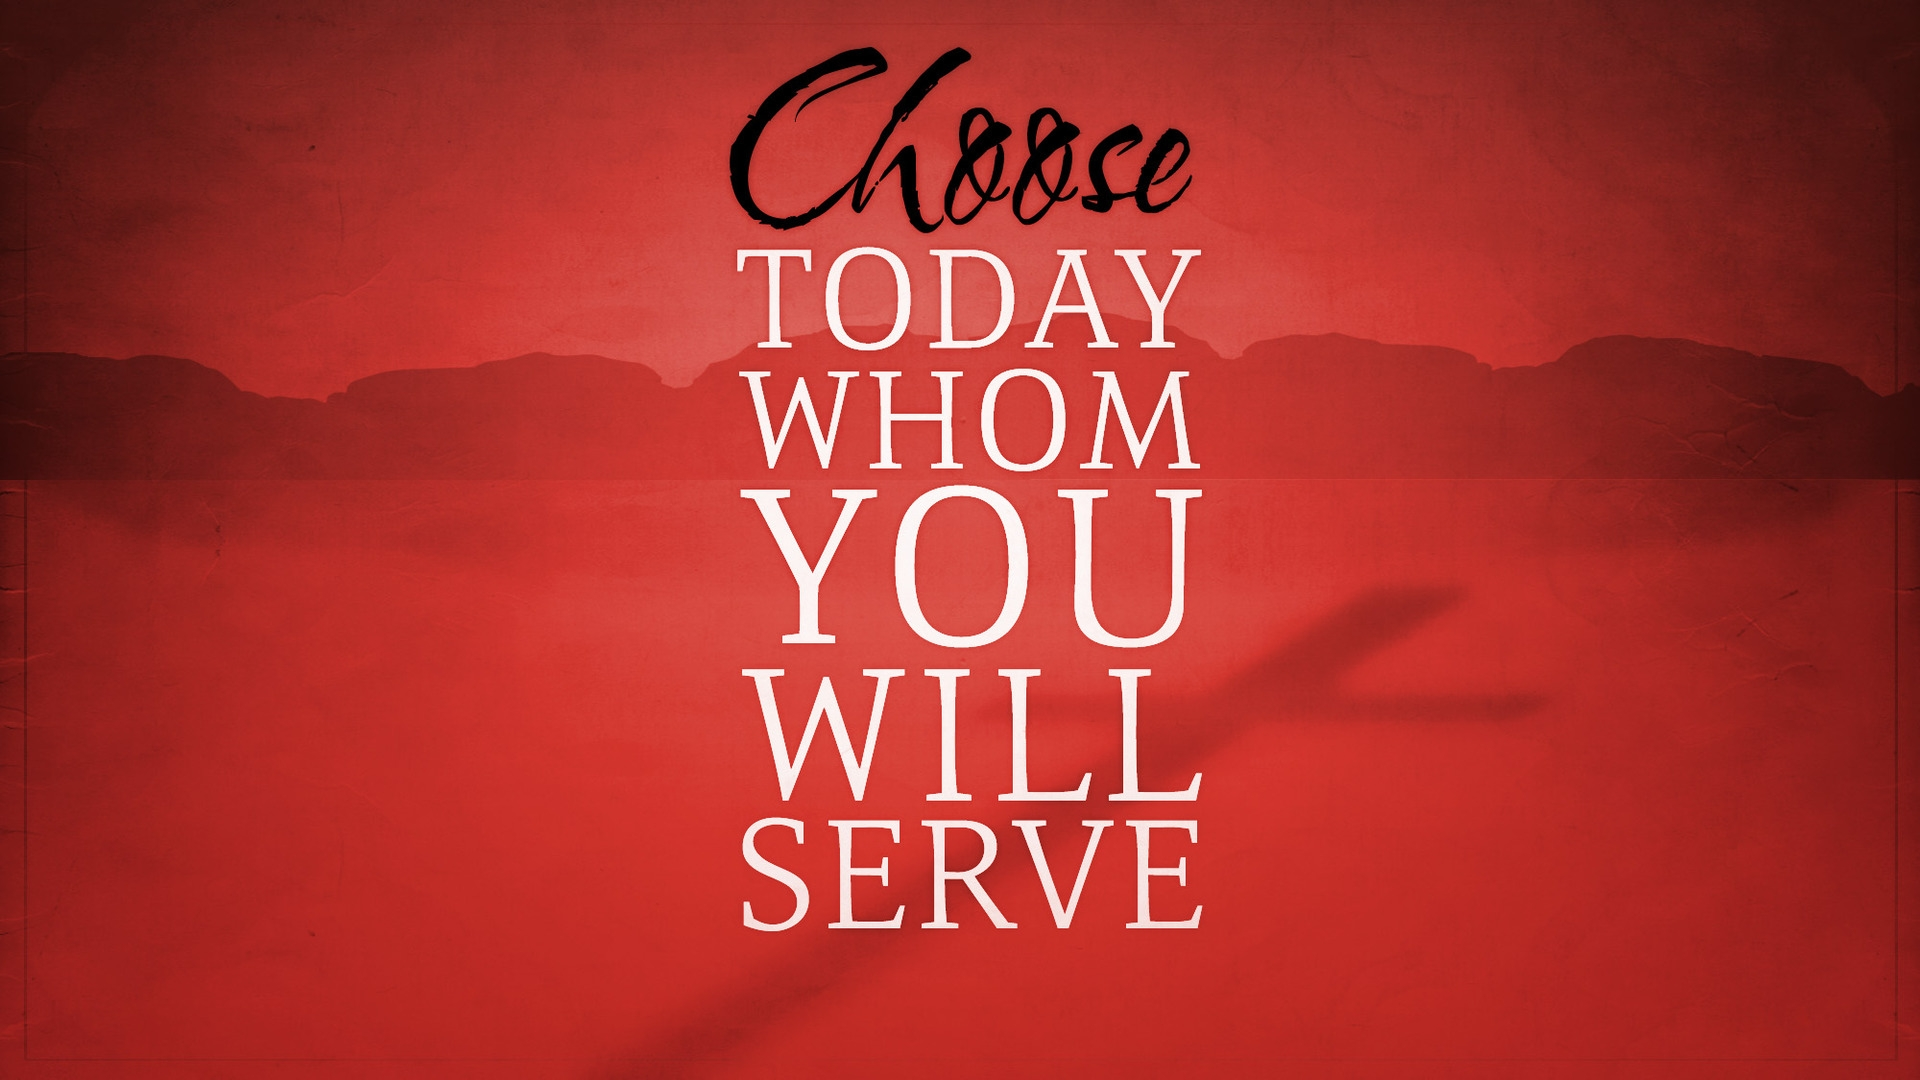 Sunday February 16, 2020 Choose Today Whom You Will Serve - Pastor Anthony Cox